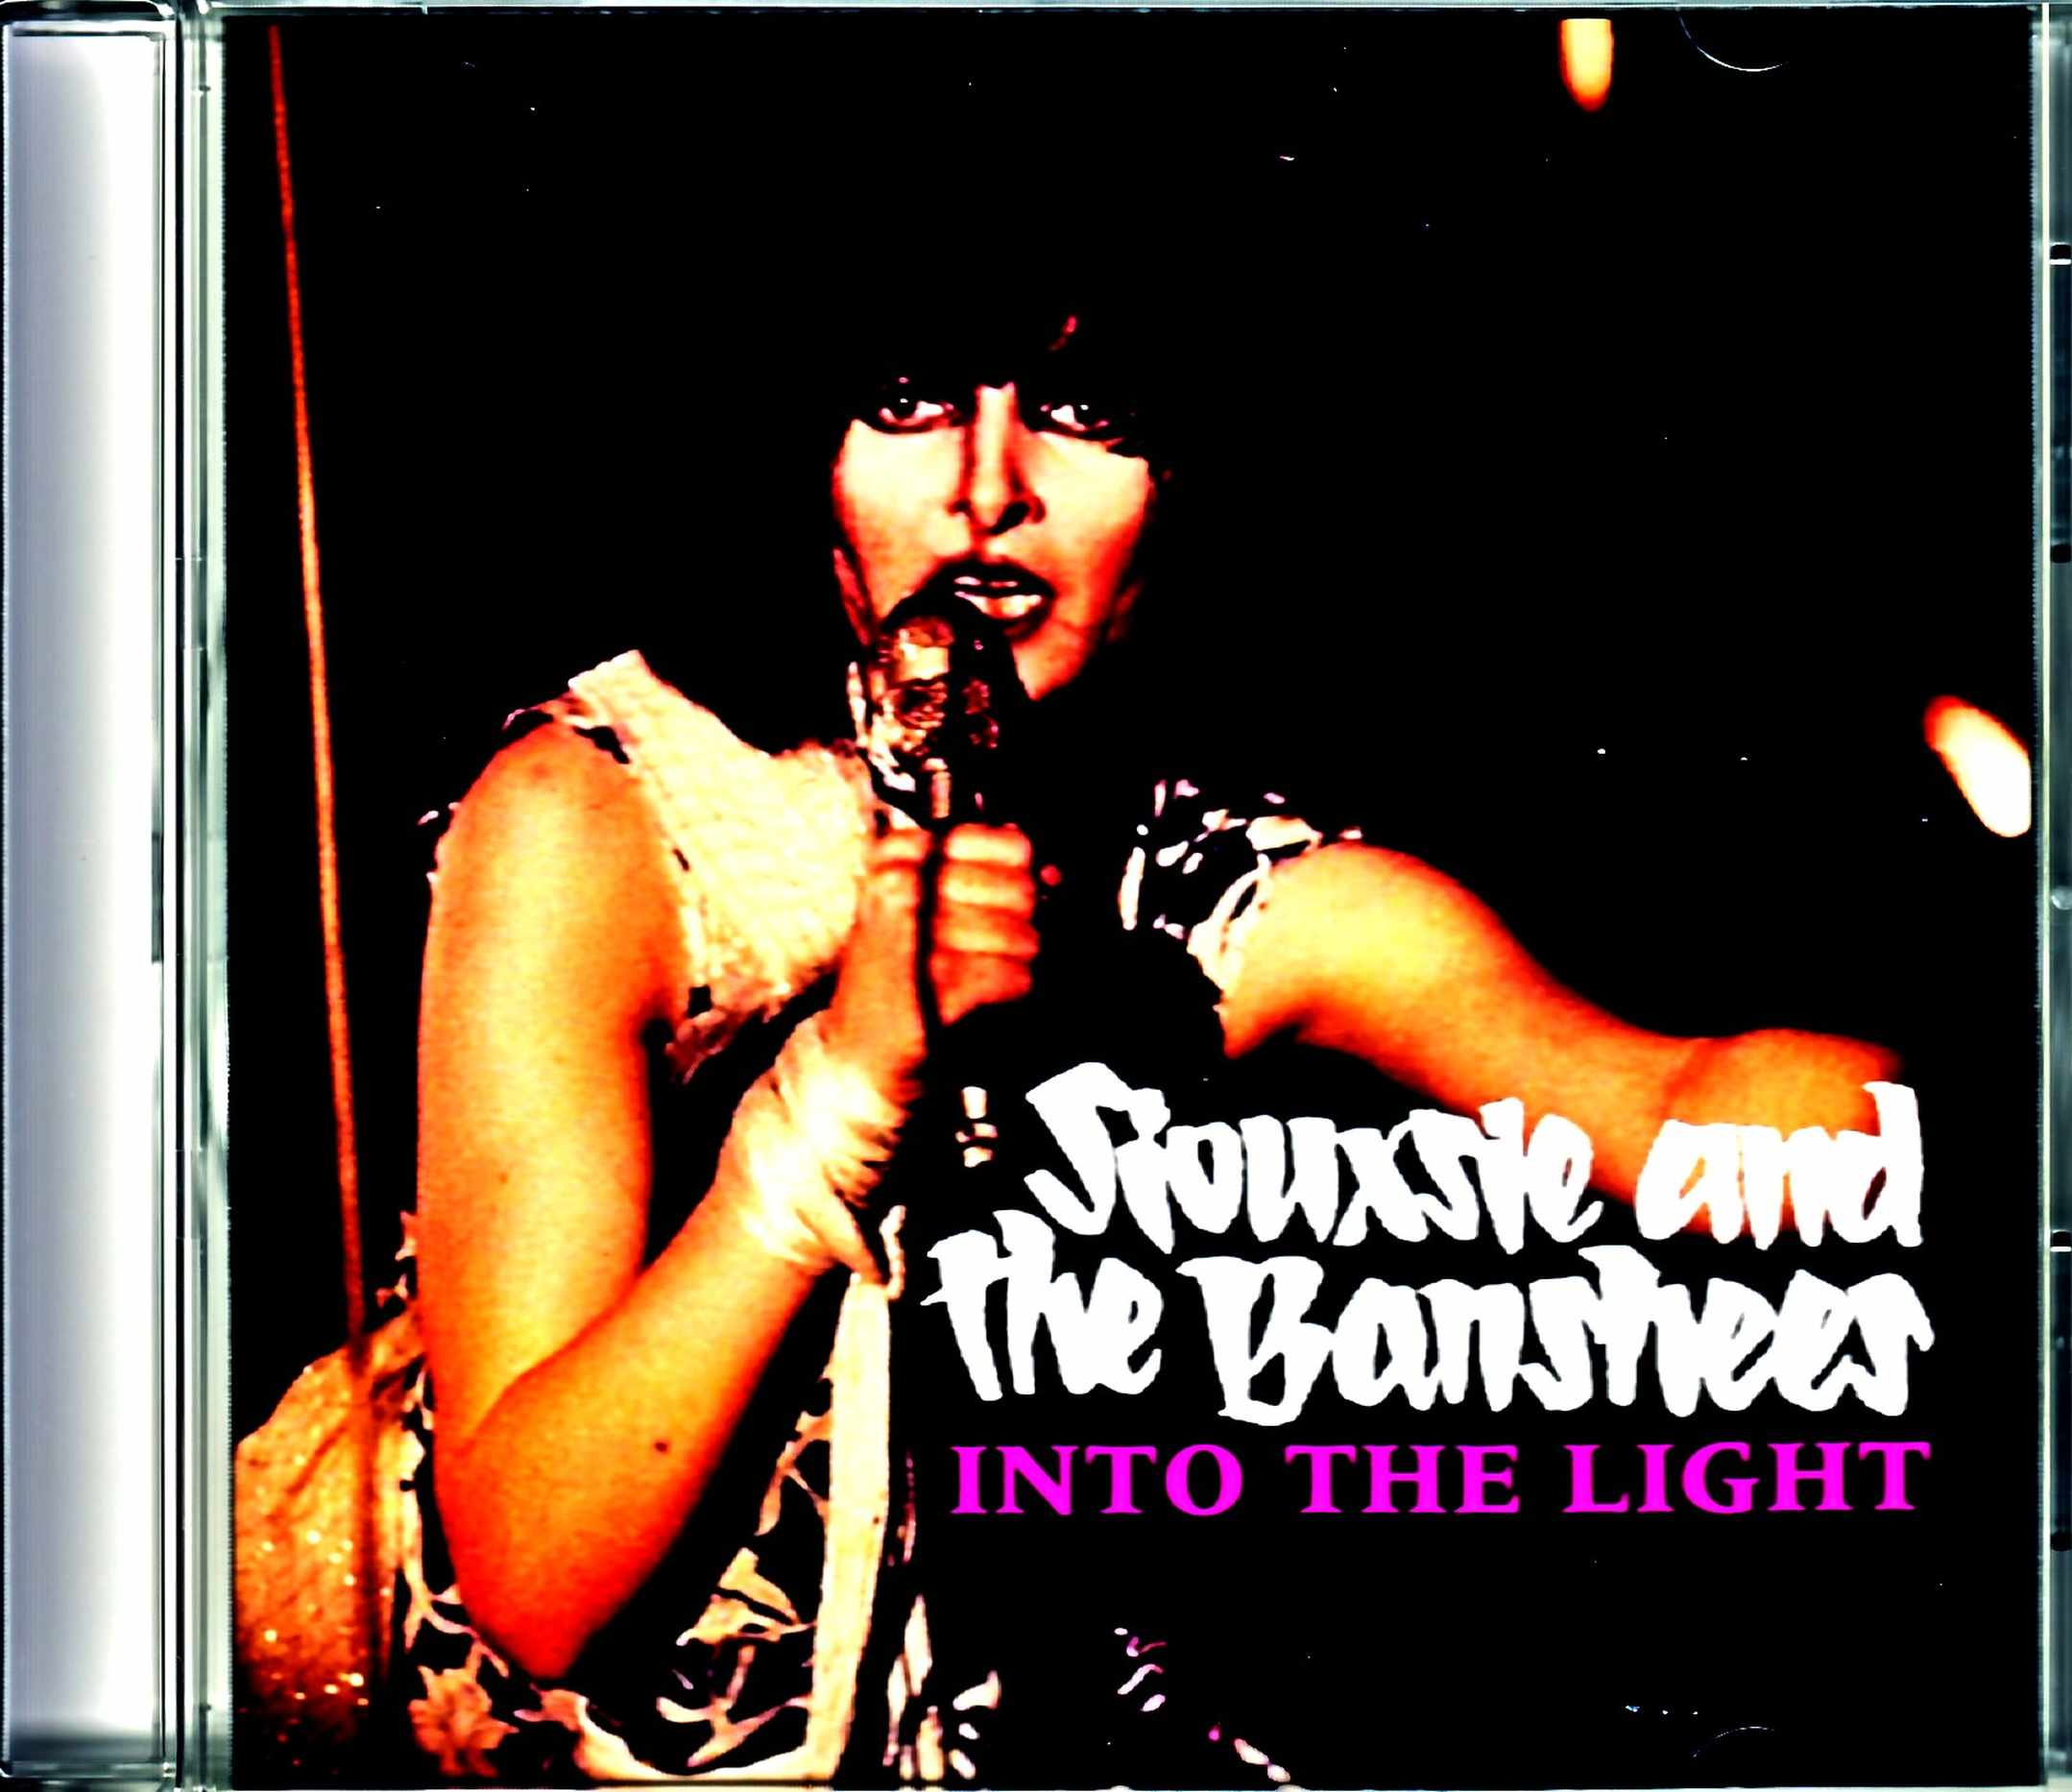 Siouxsie and the Banshees スージー・アンド・ザ・バンシーズ/London,UK 1981 Conplete